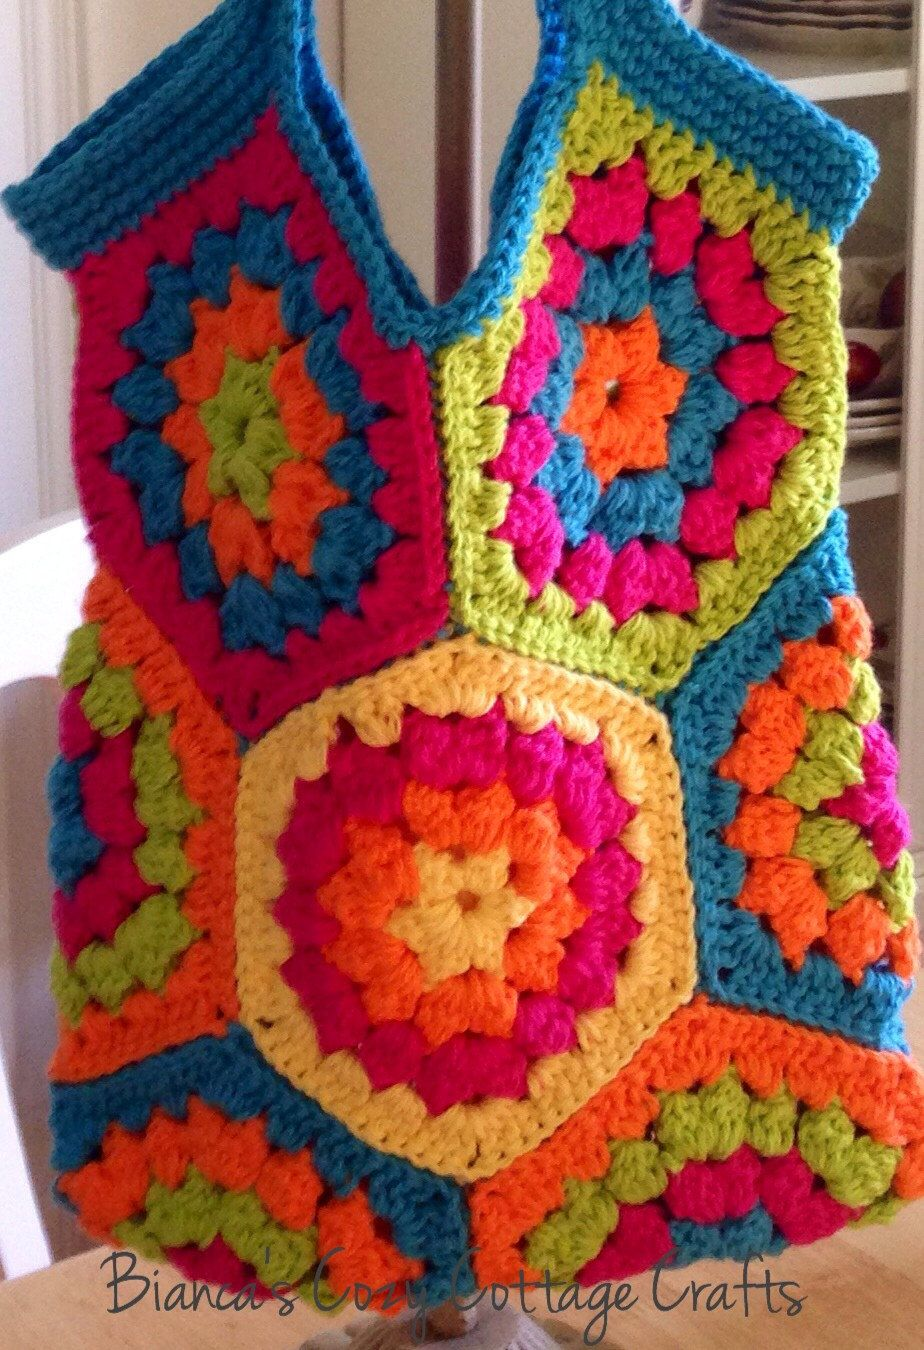 Tote bag market bag hexagon  crochet bag chrochet tote bag cotton bag reusable bag color: yellow-orange-hot pink-green-turquoise (30.00 USD) by BsCozyCottageCrafts